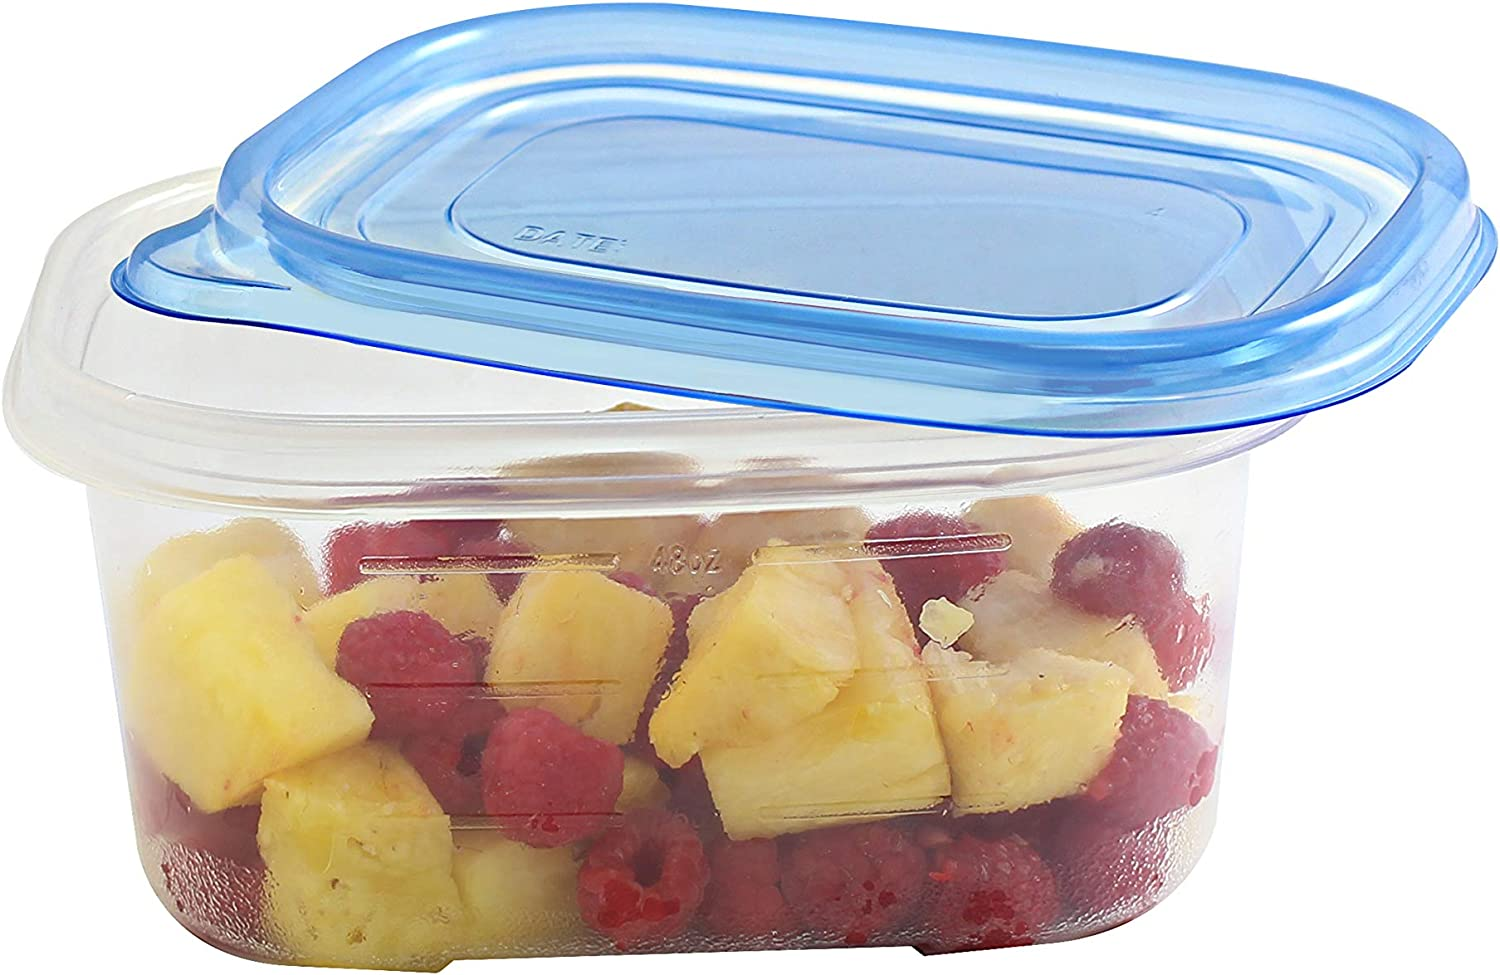 HomeyGear 5 Oblong Air-Tight Food Containers With Lids 24 Oz Stackable Reusable Plastic Storage Container 5 Pack